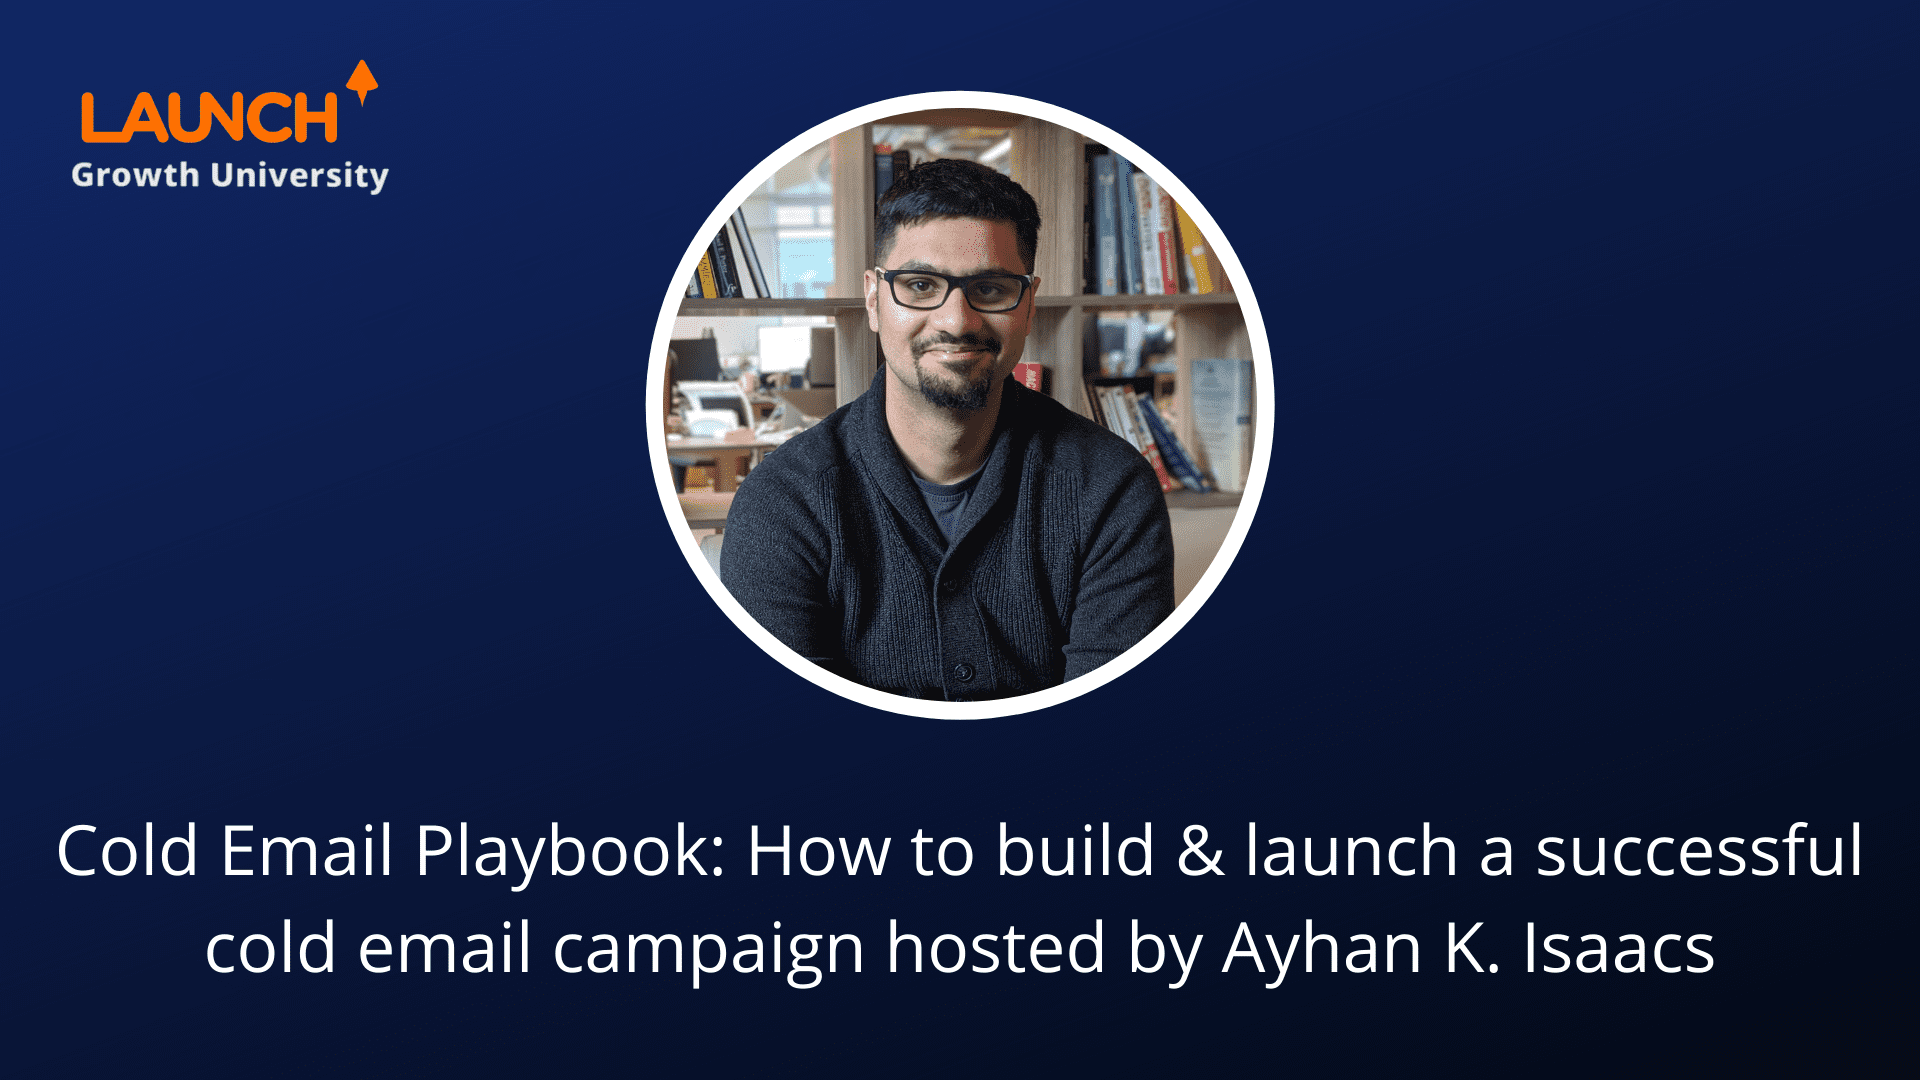 Cold Email Playbook: How to build & launch a successful cold email campaign